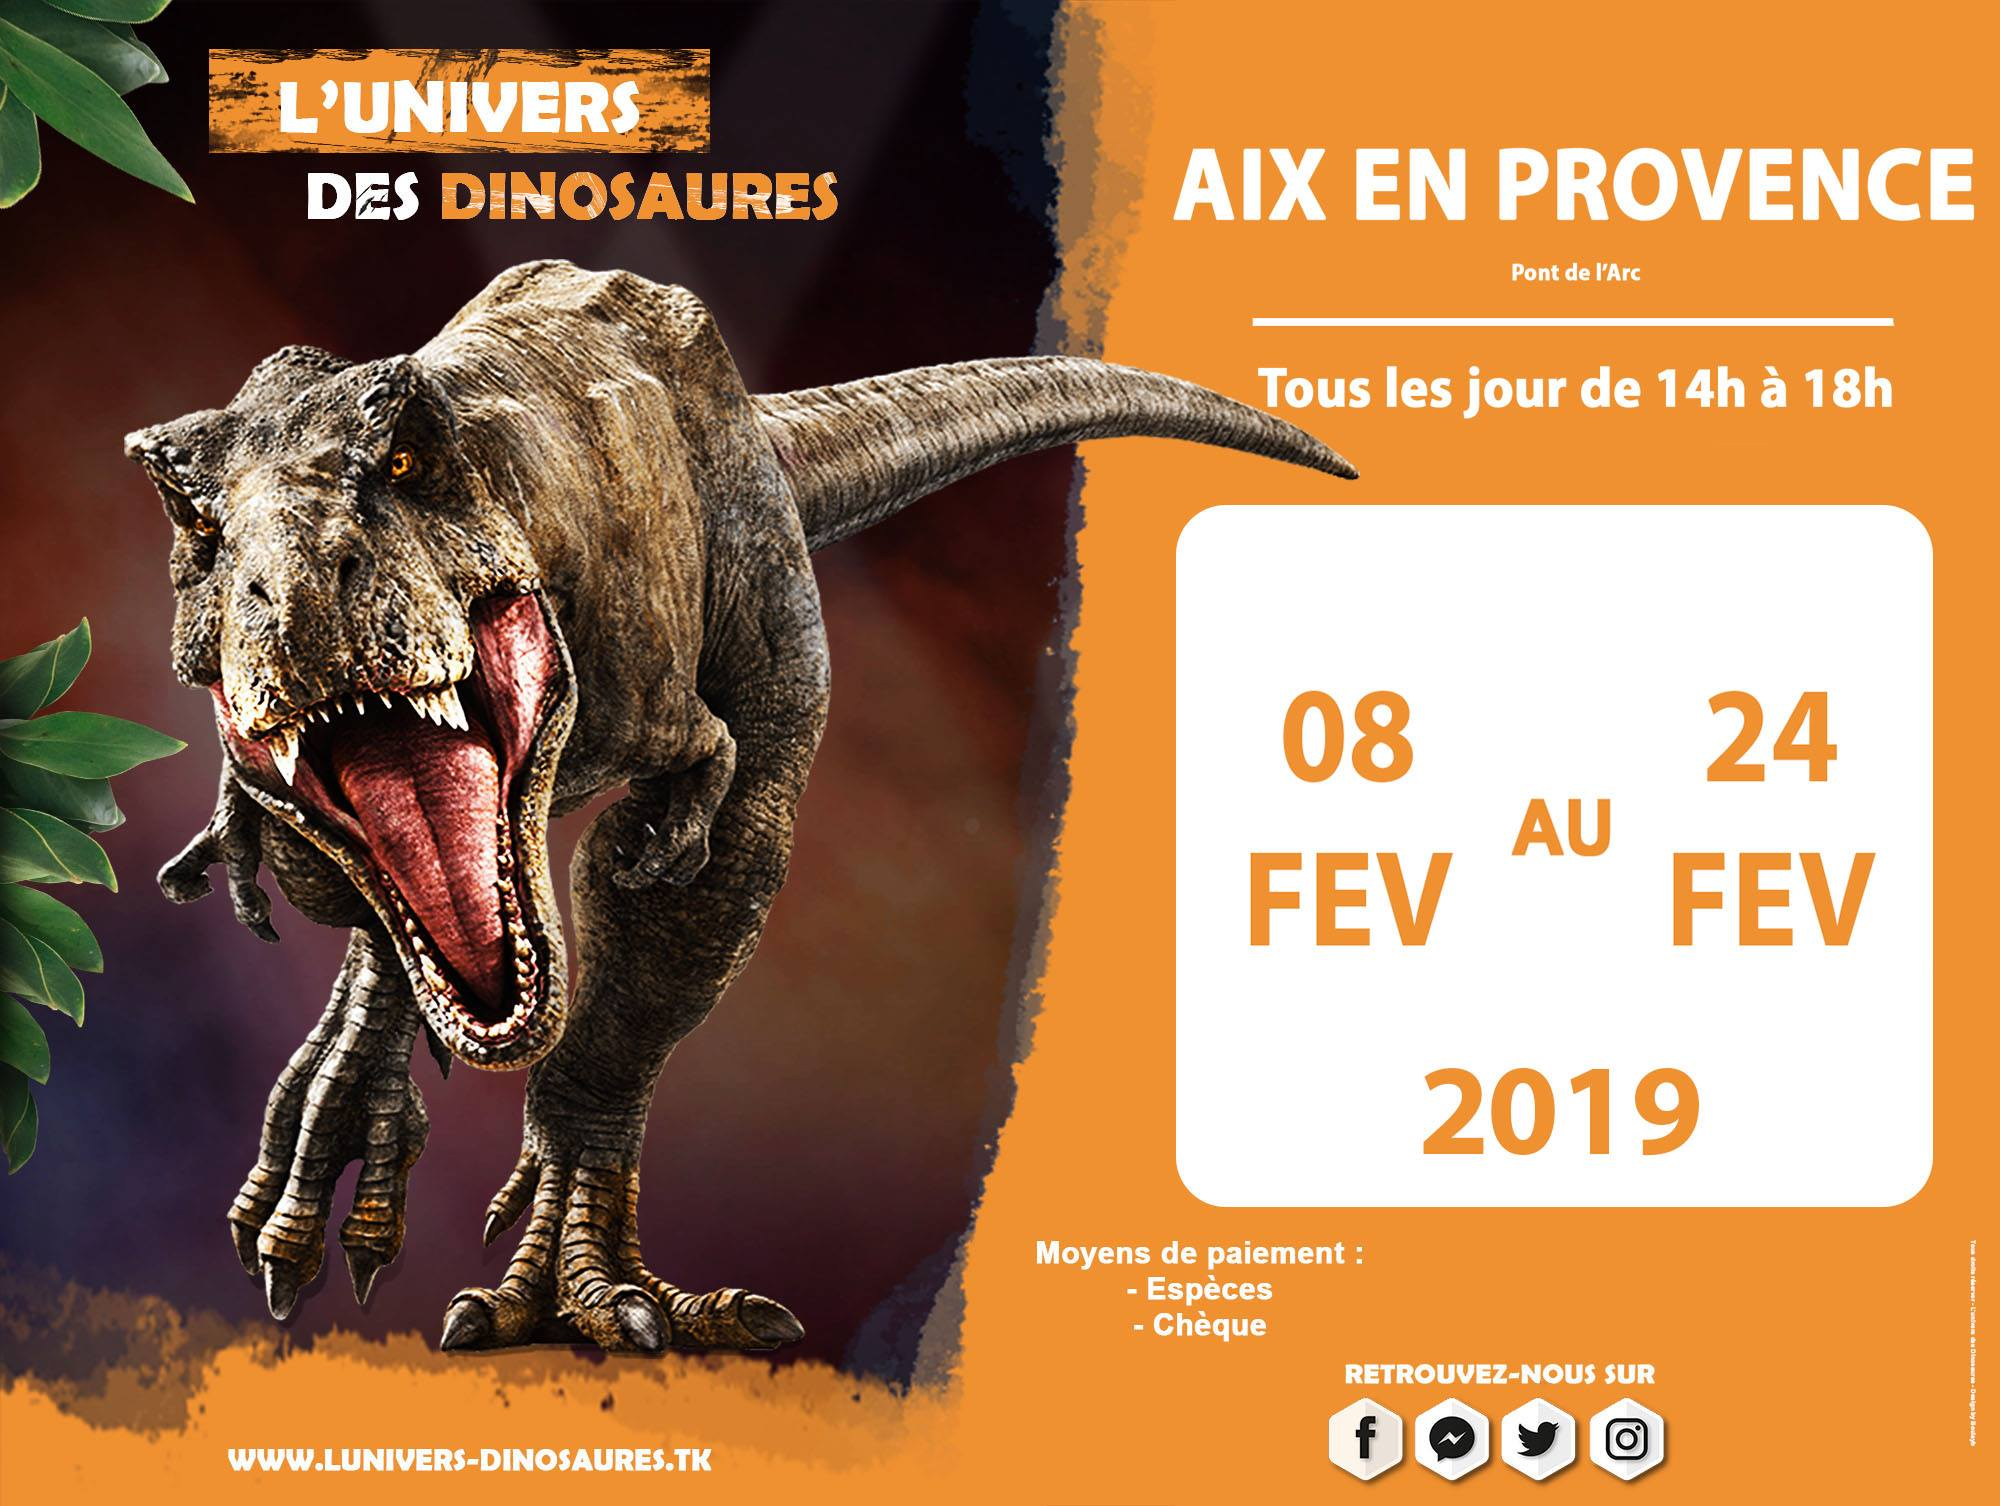 https://the-place-to-be.fr/wp-content/uploads/2019/01/univers-des-dinosaures-aix-en-provence.jpg